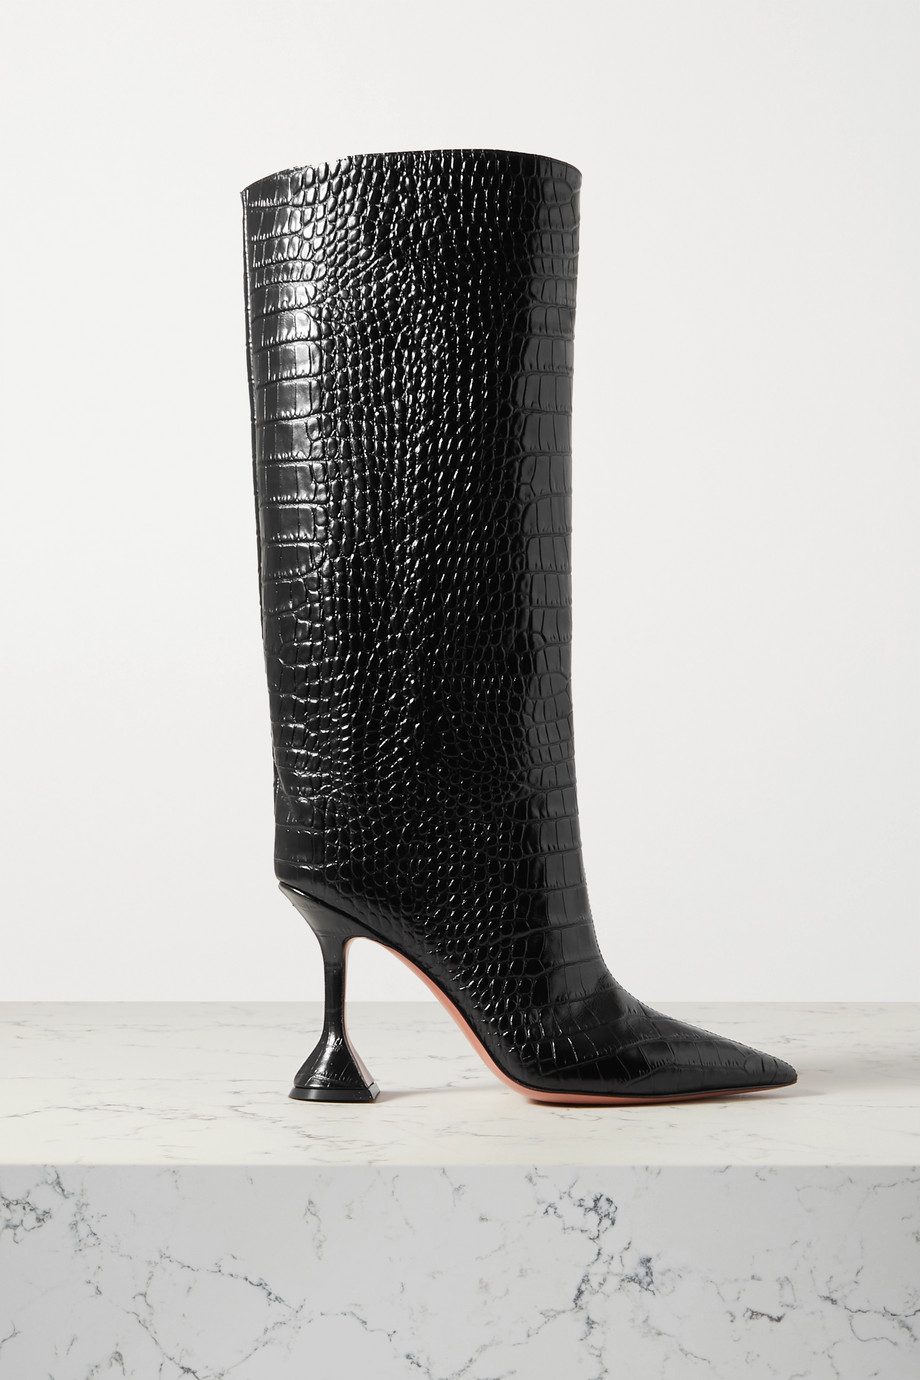 Amina Muaddi Rain croc-effect leather knee boots